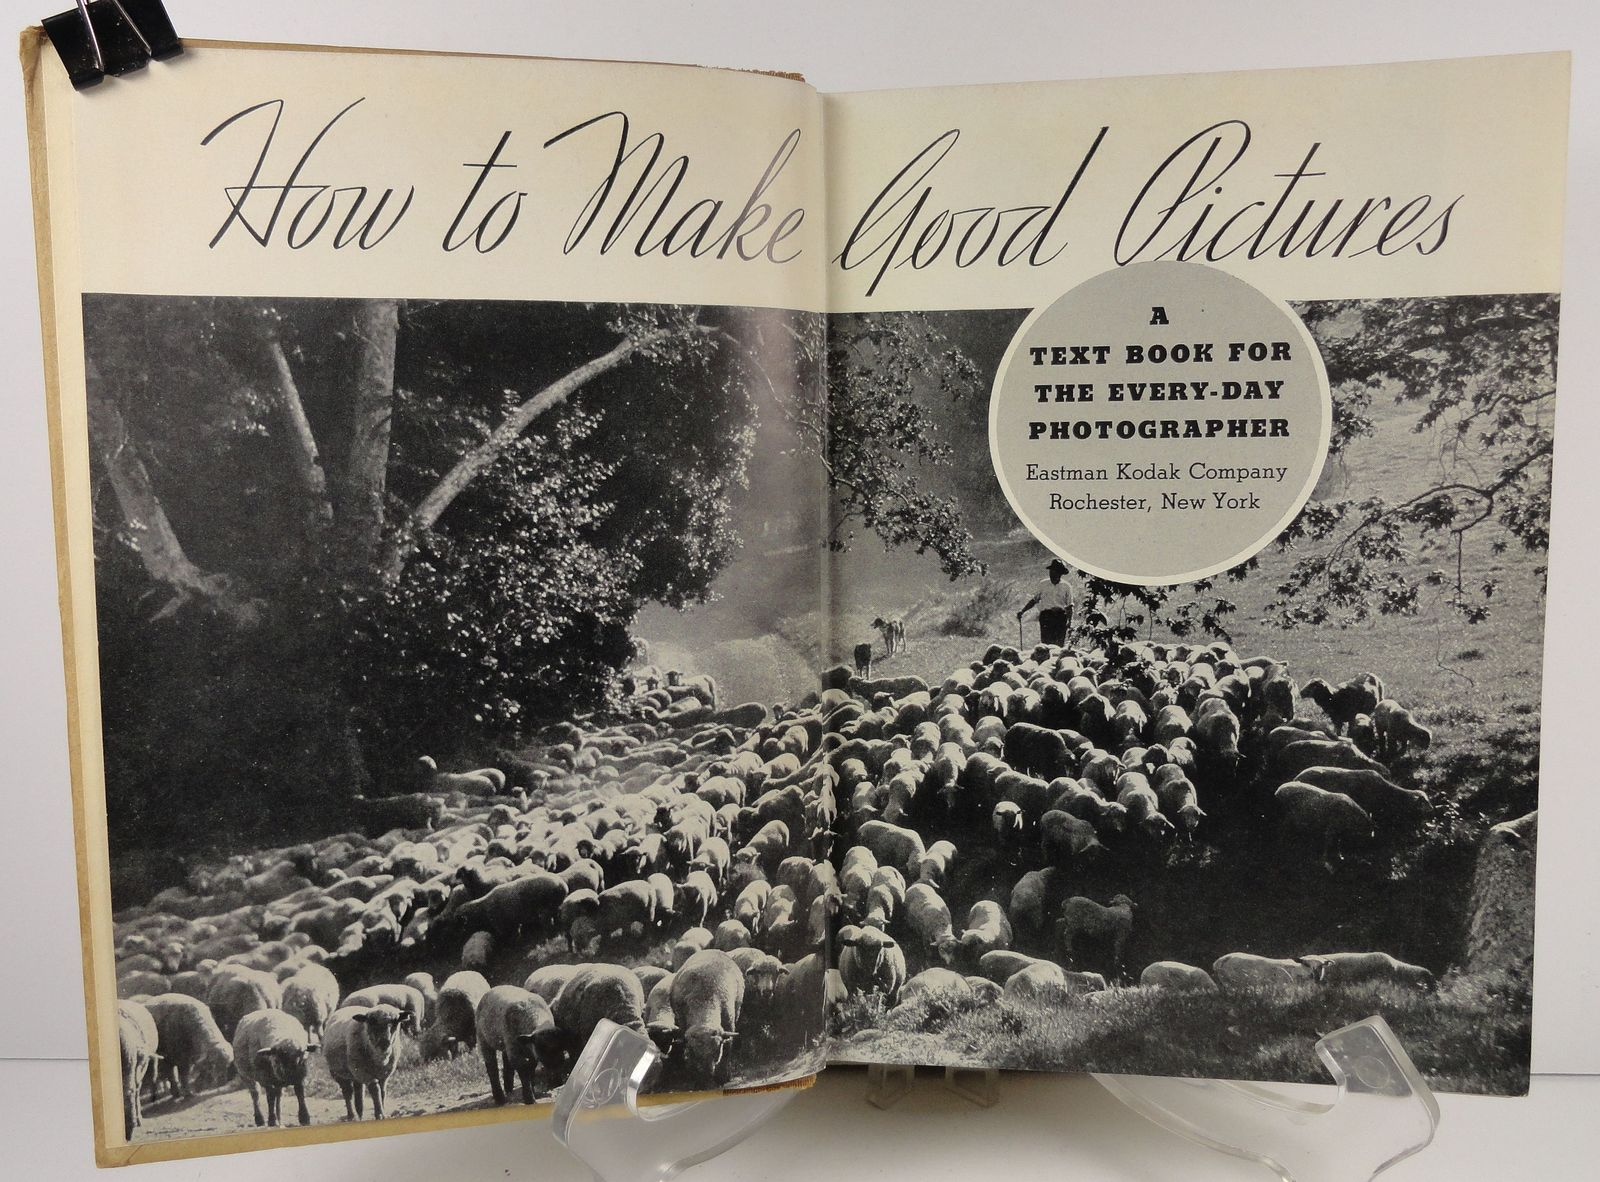 How to Make Good Pictures by Eastman Kodak 24th Edition